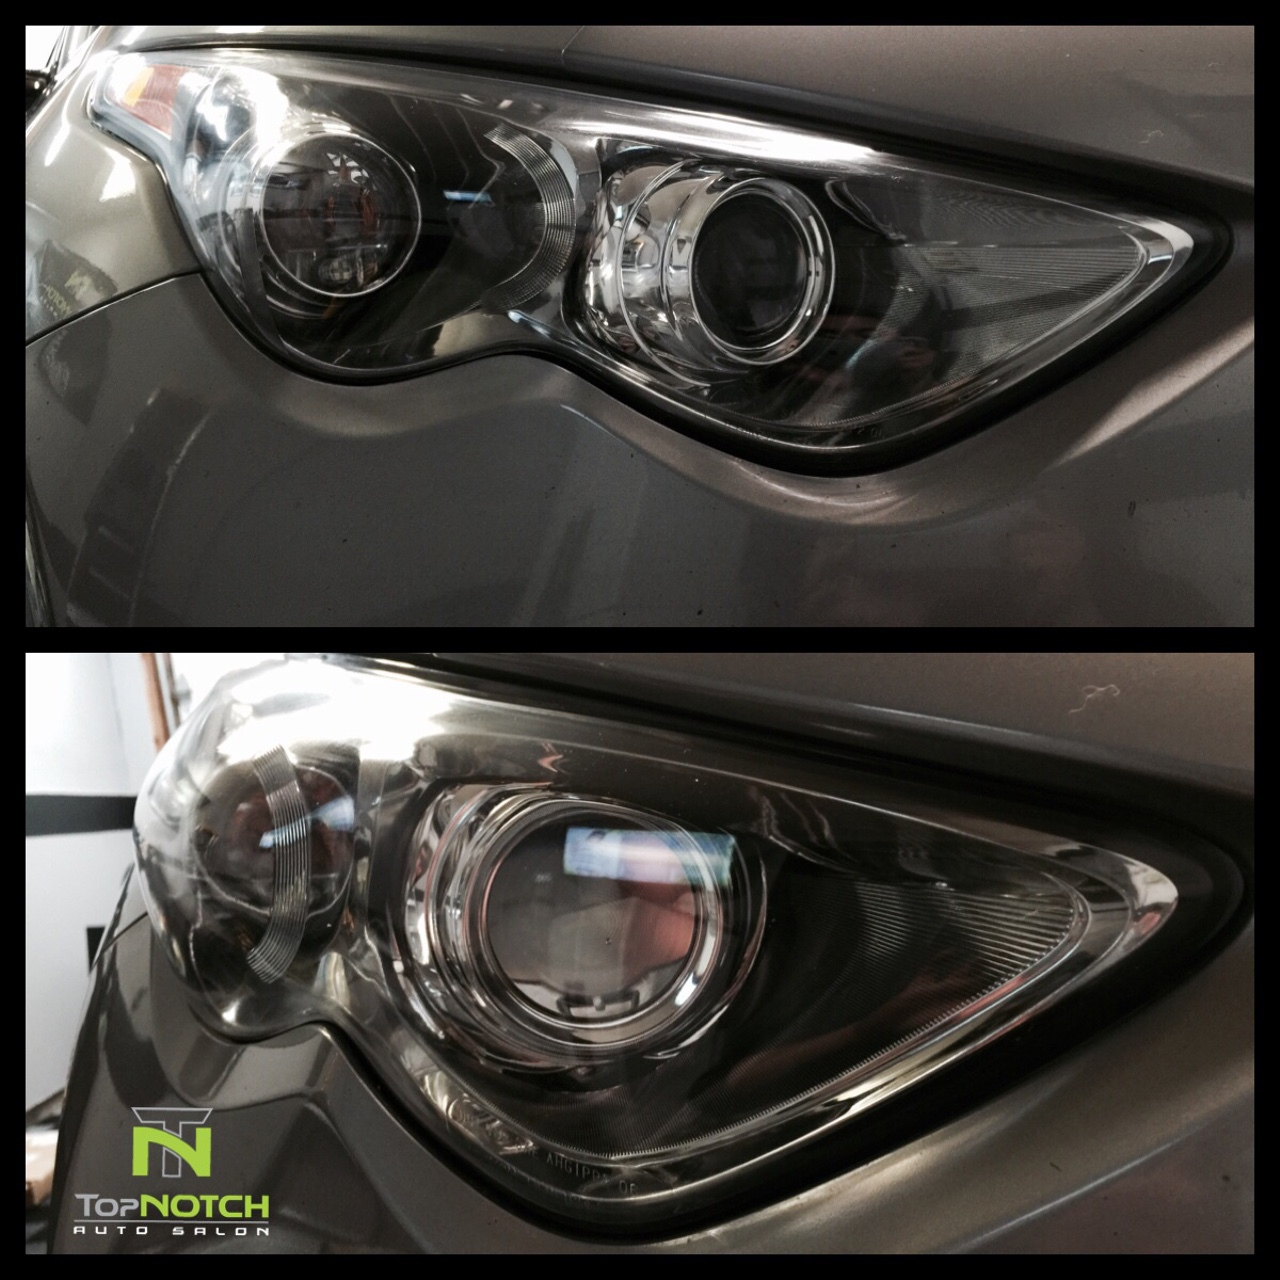 infinity fx35 after headlight restoration - Top  Notch Auto Salon